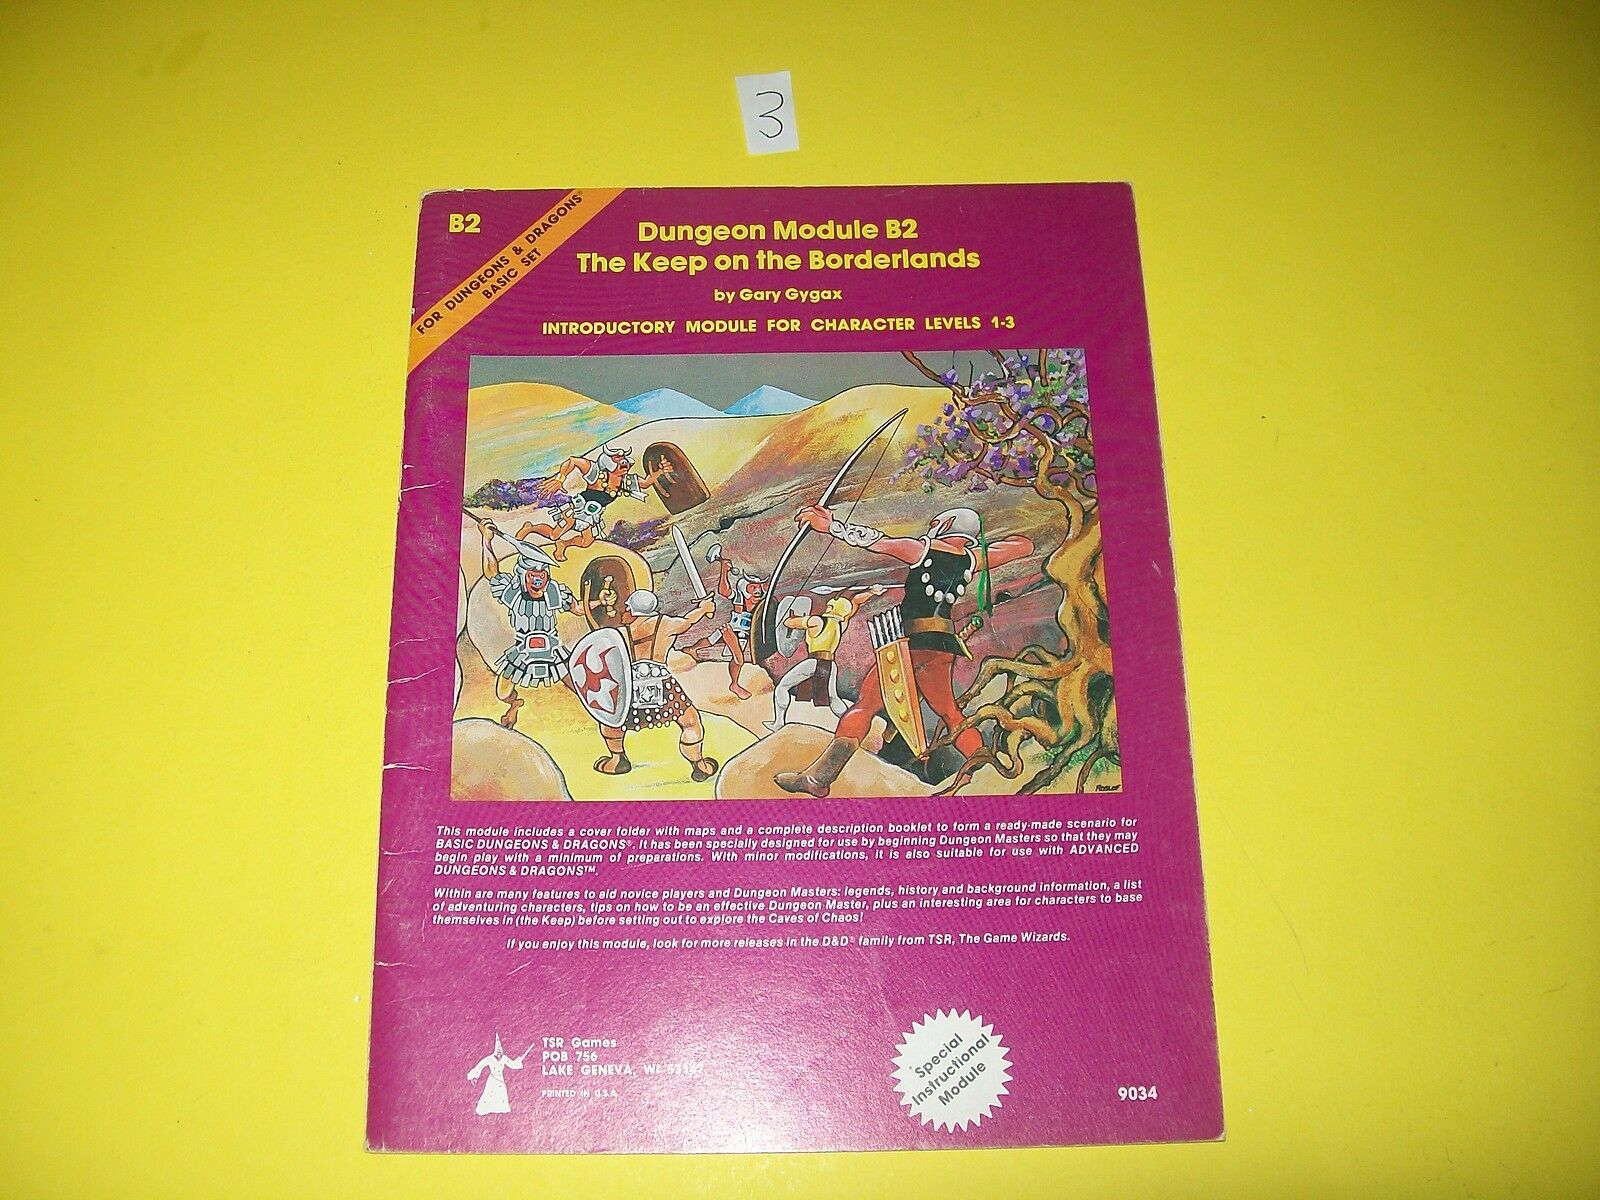 B2 THE KEEP ON THE BORDERLANDS DUNGEONS & DRAGONS TSR 9034 3 TRUE 1ST PRINT